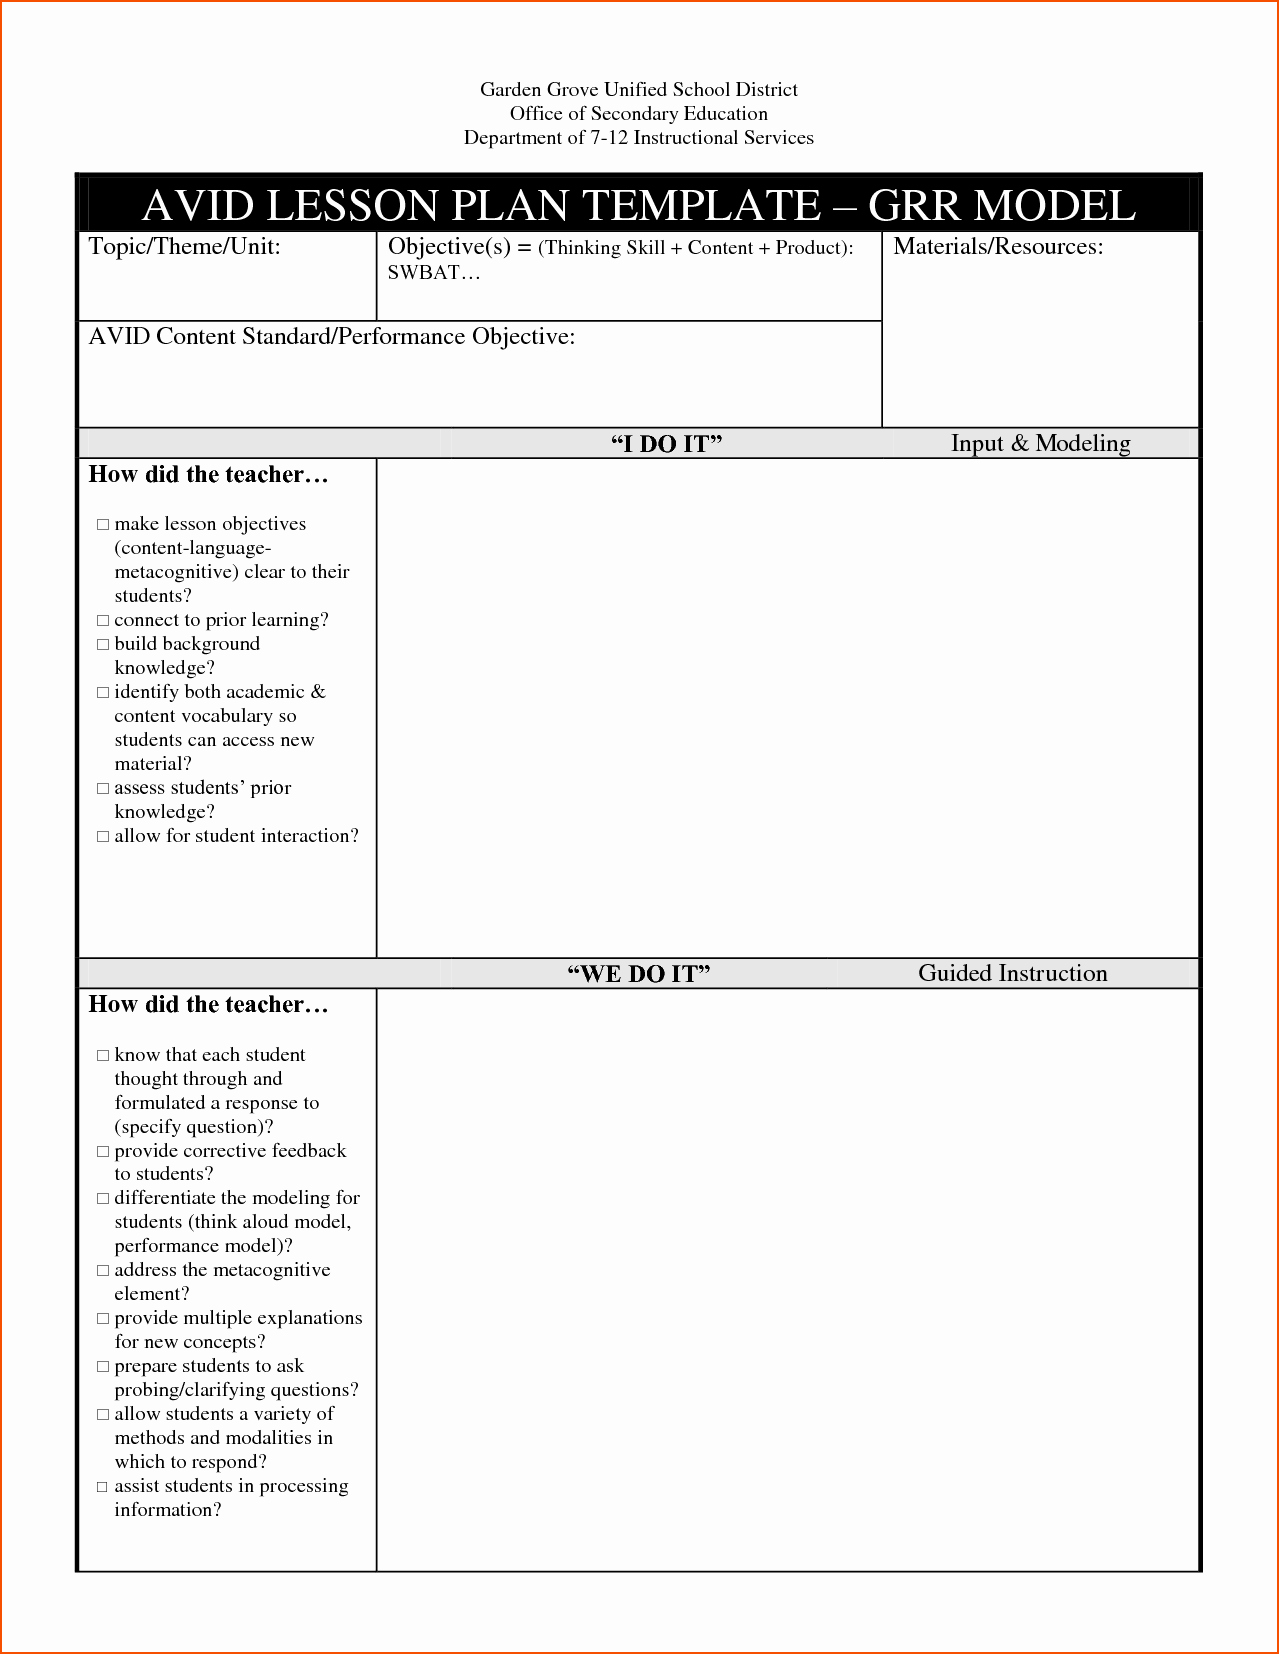 Tiered Lesson Plan Template Fresh Tiered Lesson Plan Template Doc Pictures Sludgeport657